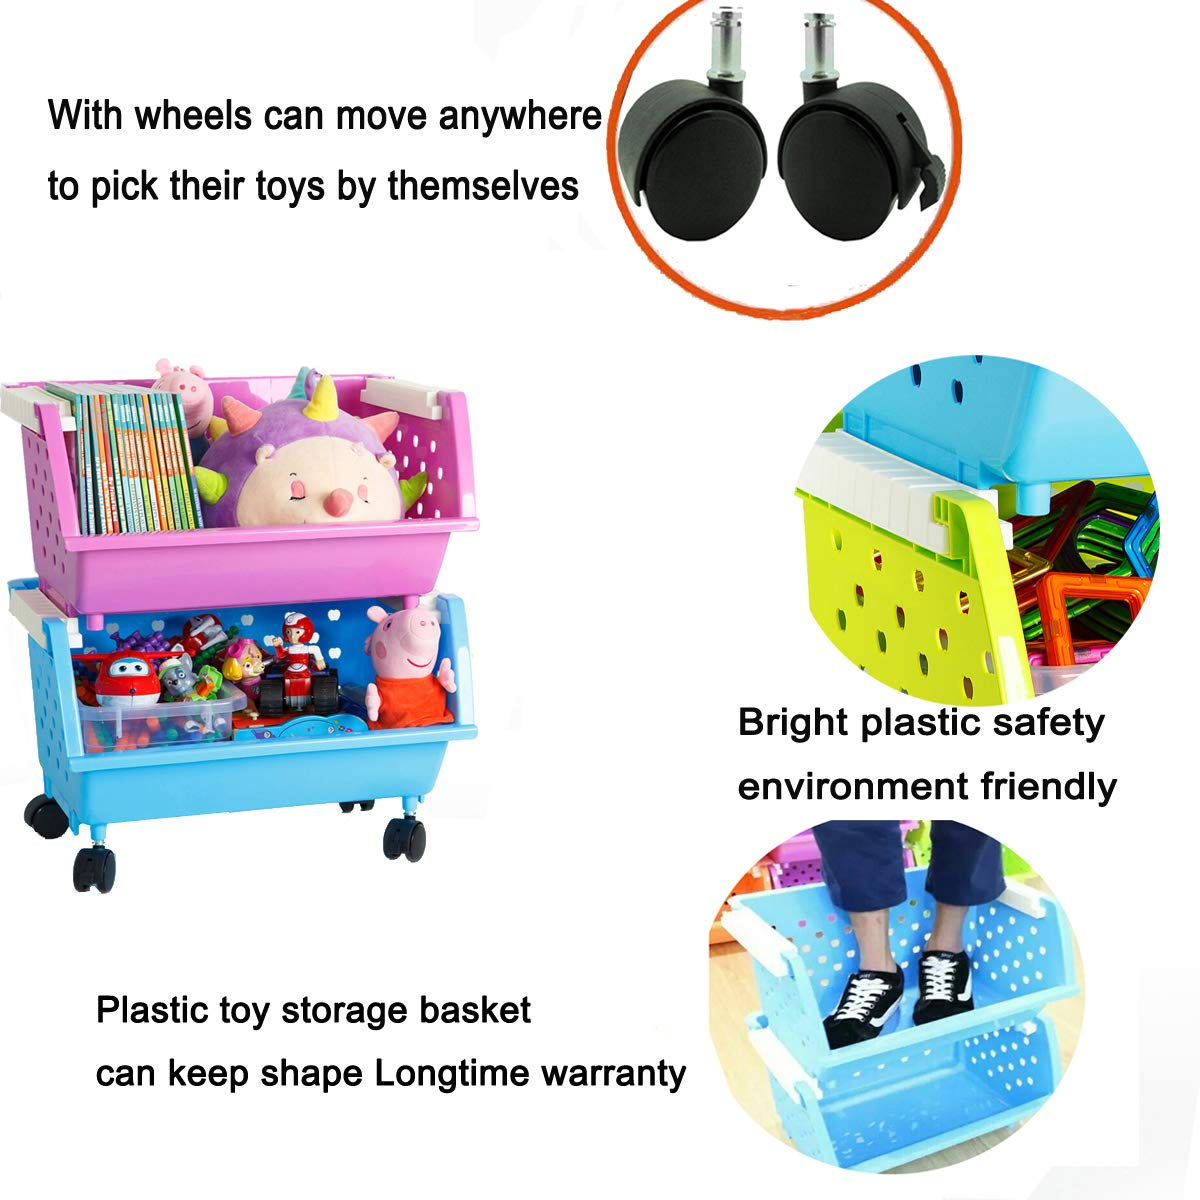 3 White MAGDESIGNER Kids Toy Box Chest Storage Bins Organizer with Wheels Can Move Everywhere Large 3 Basket Natural//Primary Primary Collection